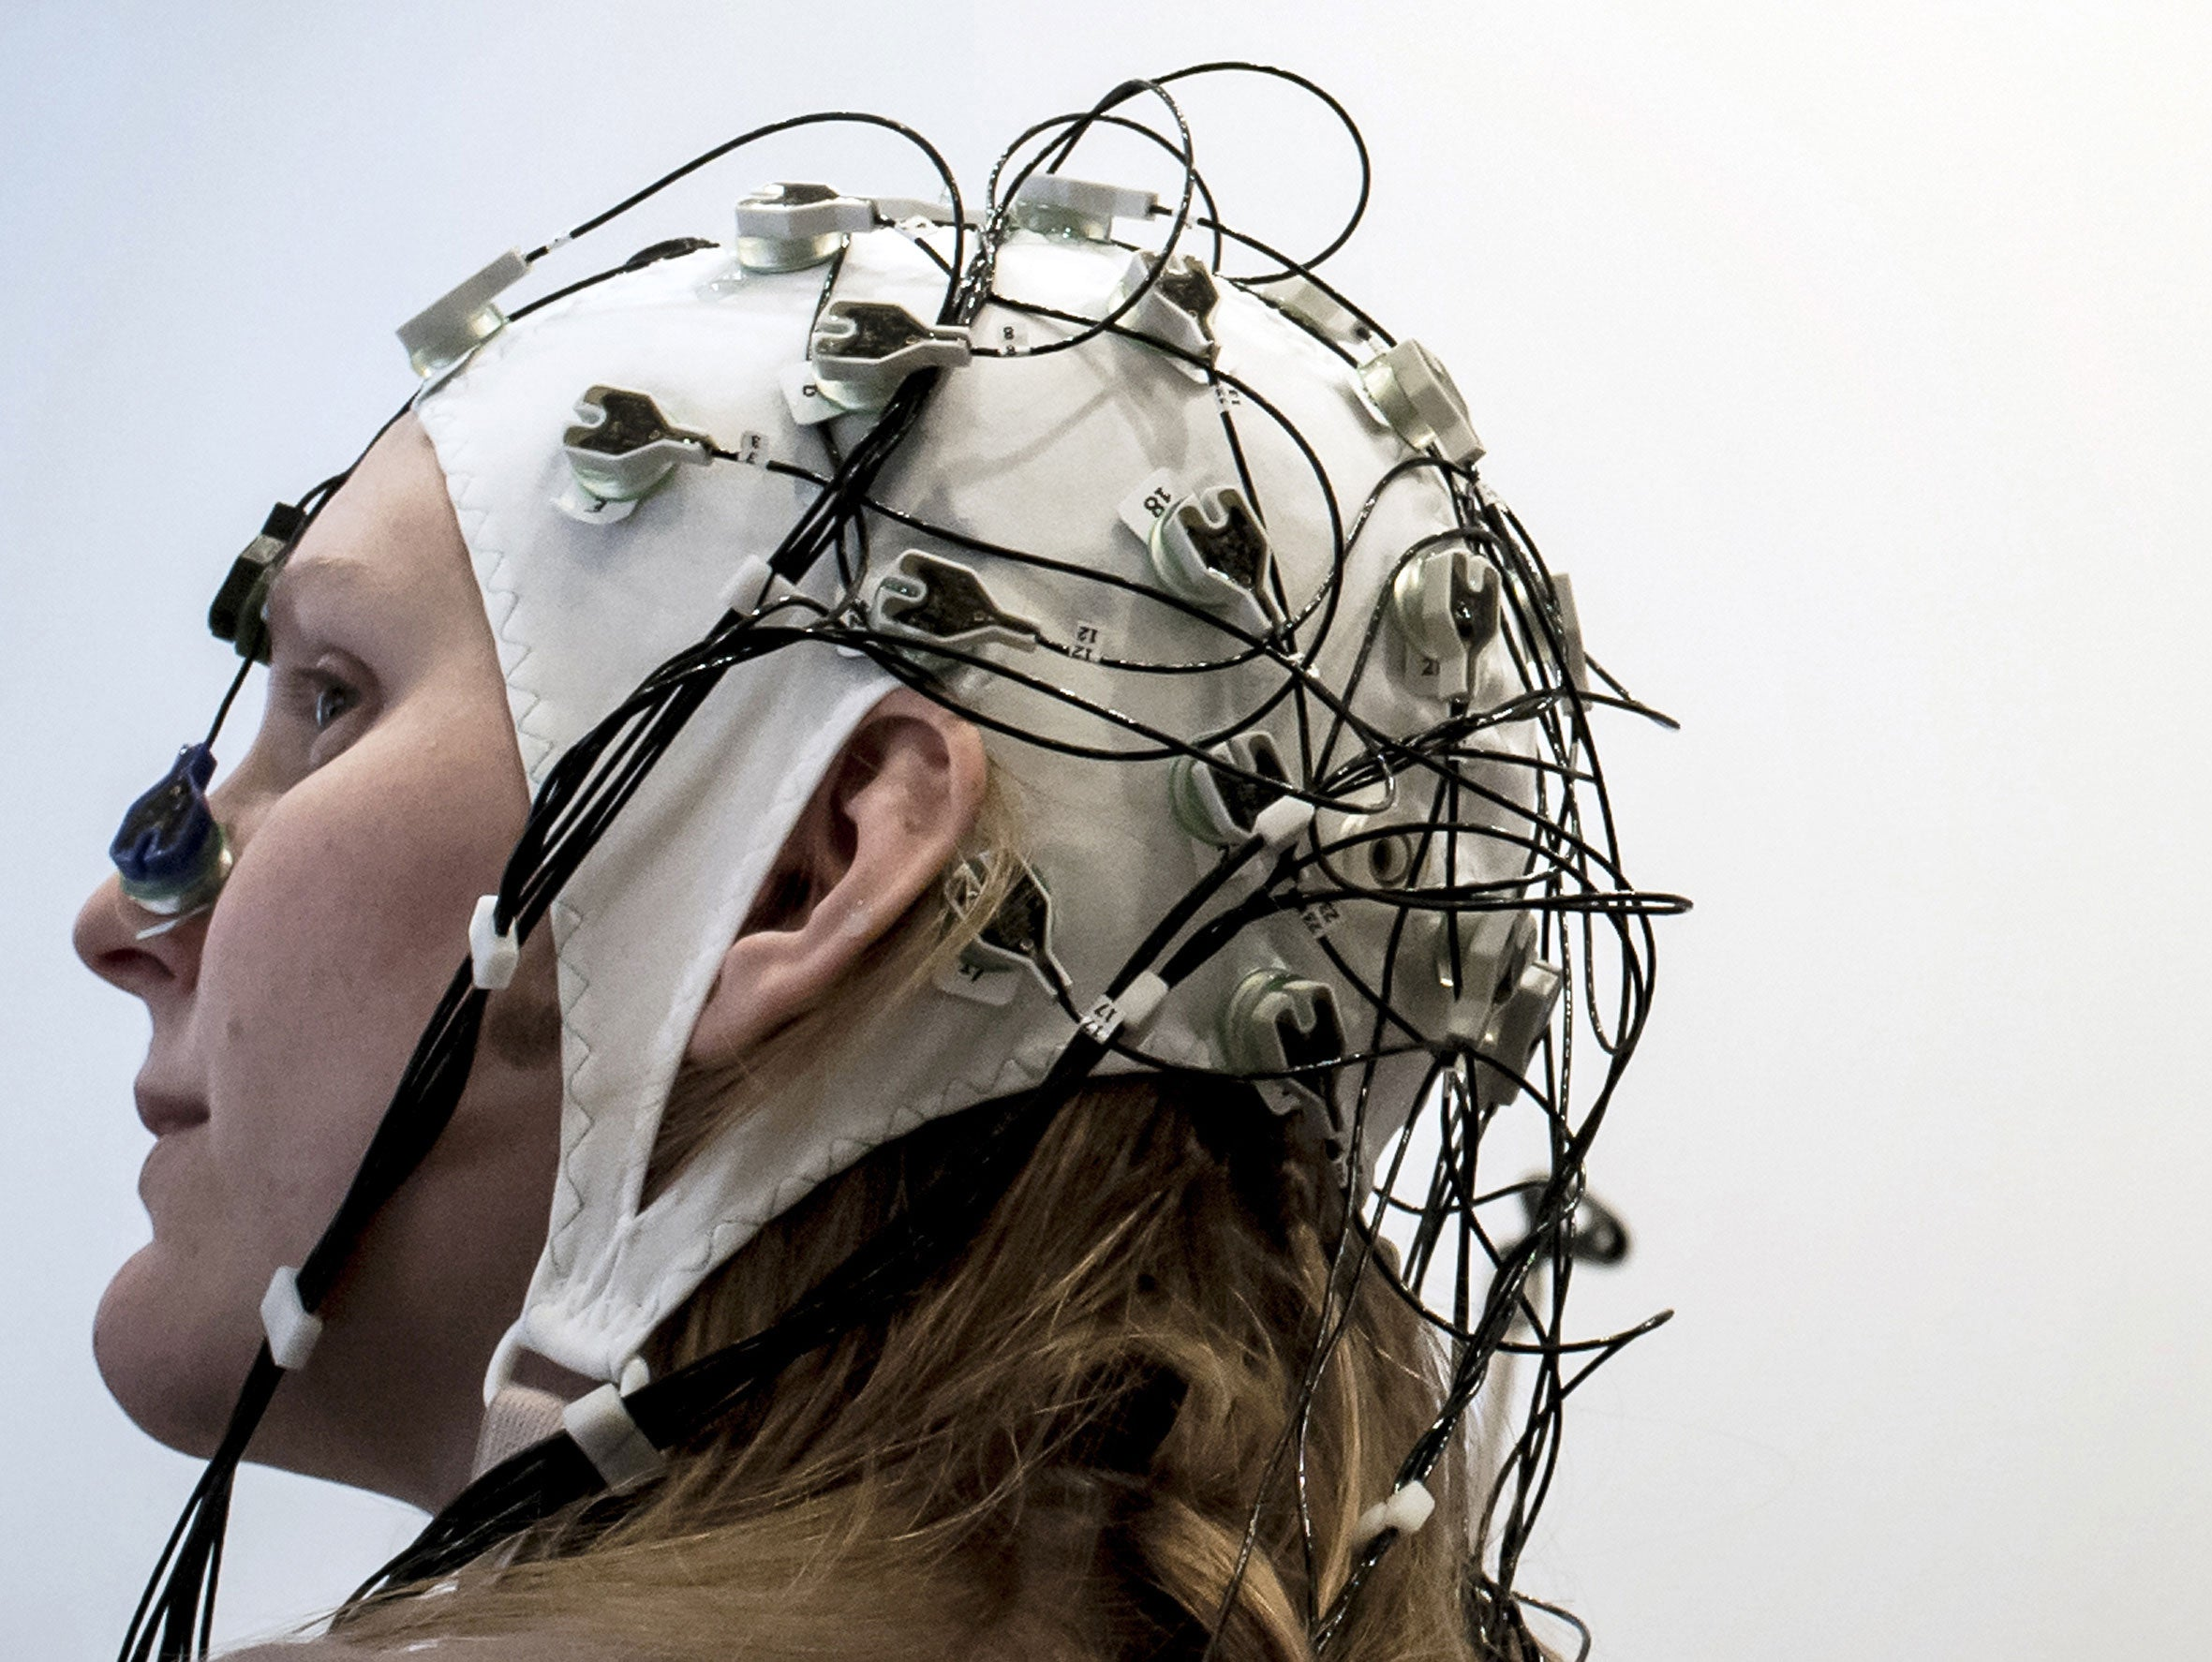 Scientists develop Matrix-style technology capable of 'uploading knowledge' to your brain